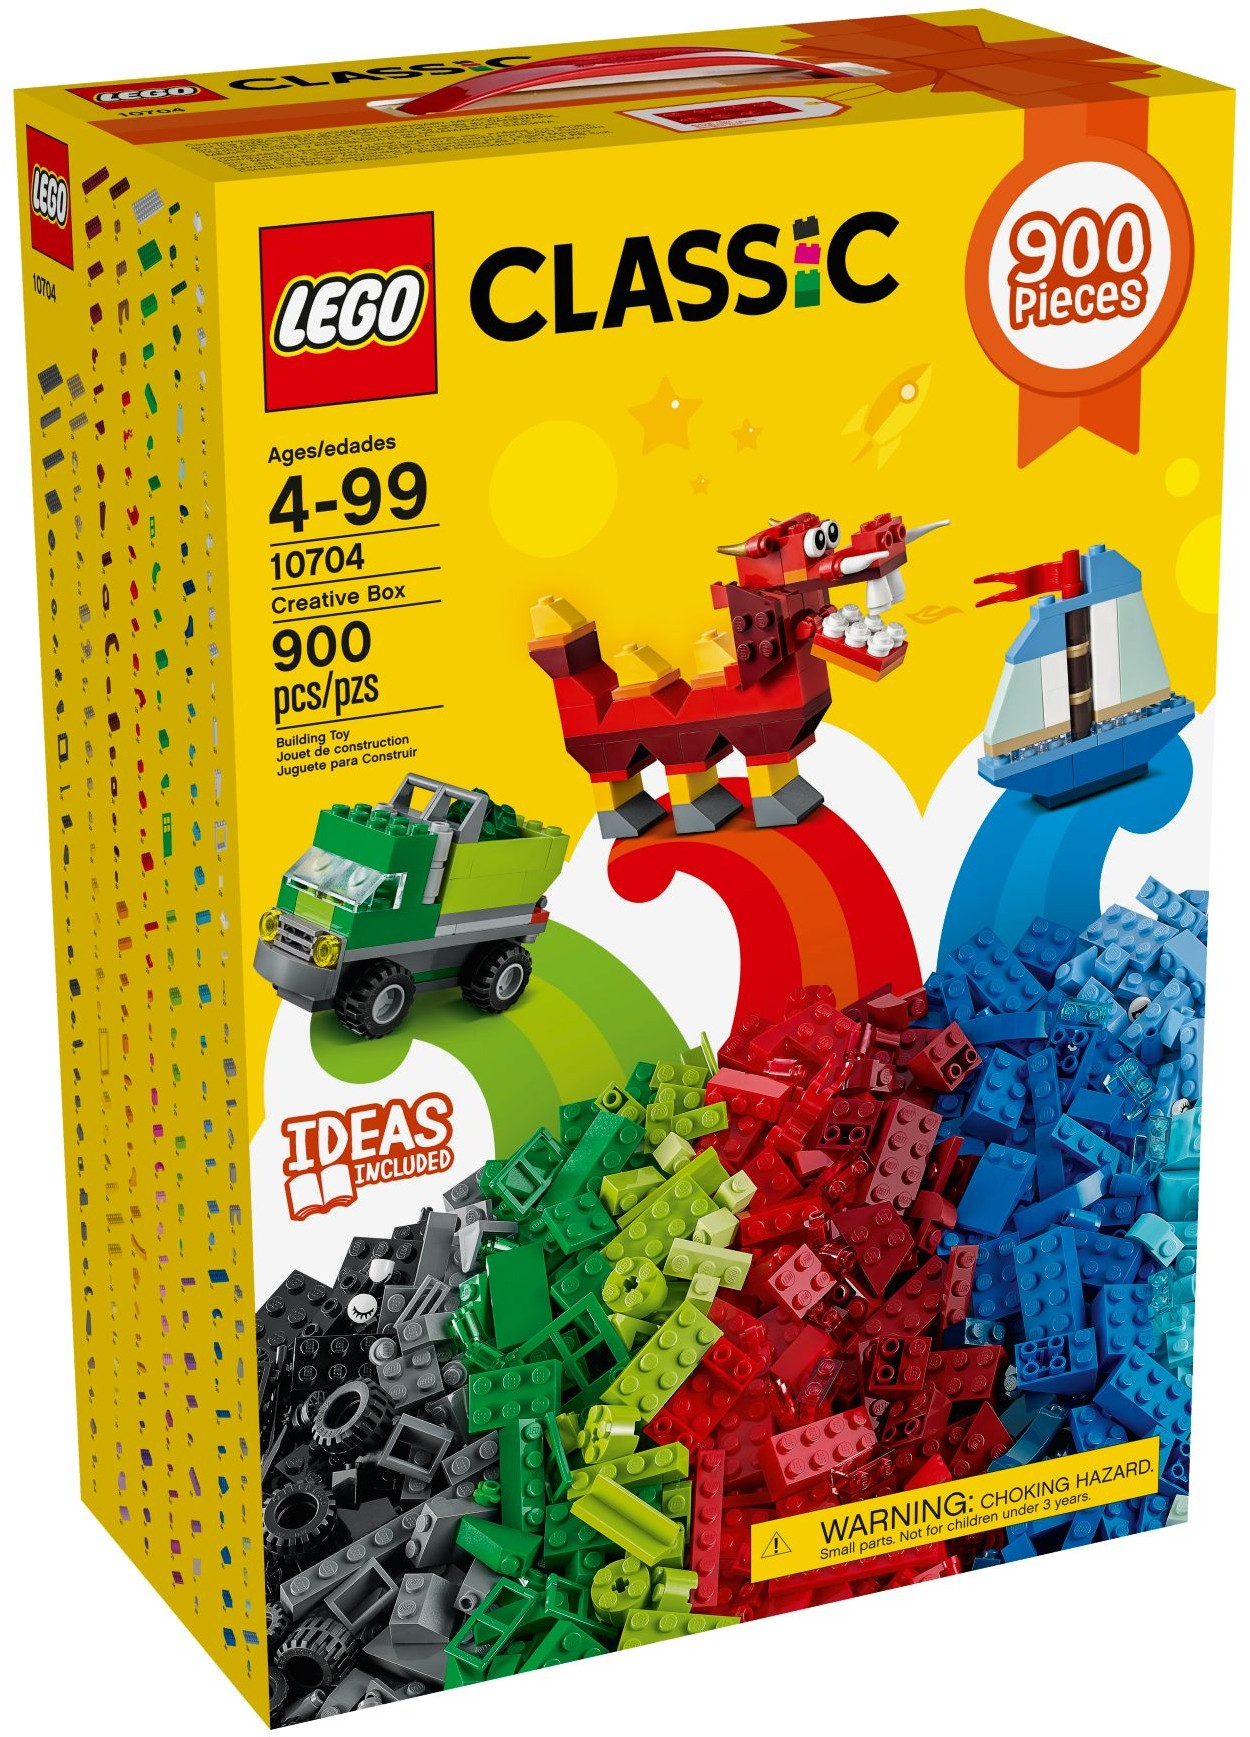 Brick Walmart Deals Lego The Friday 2017 Fan E9I2WDHeY